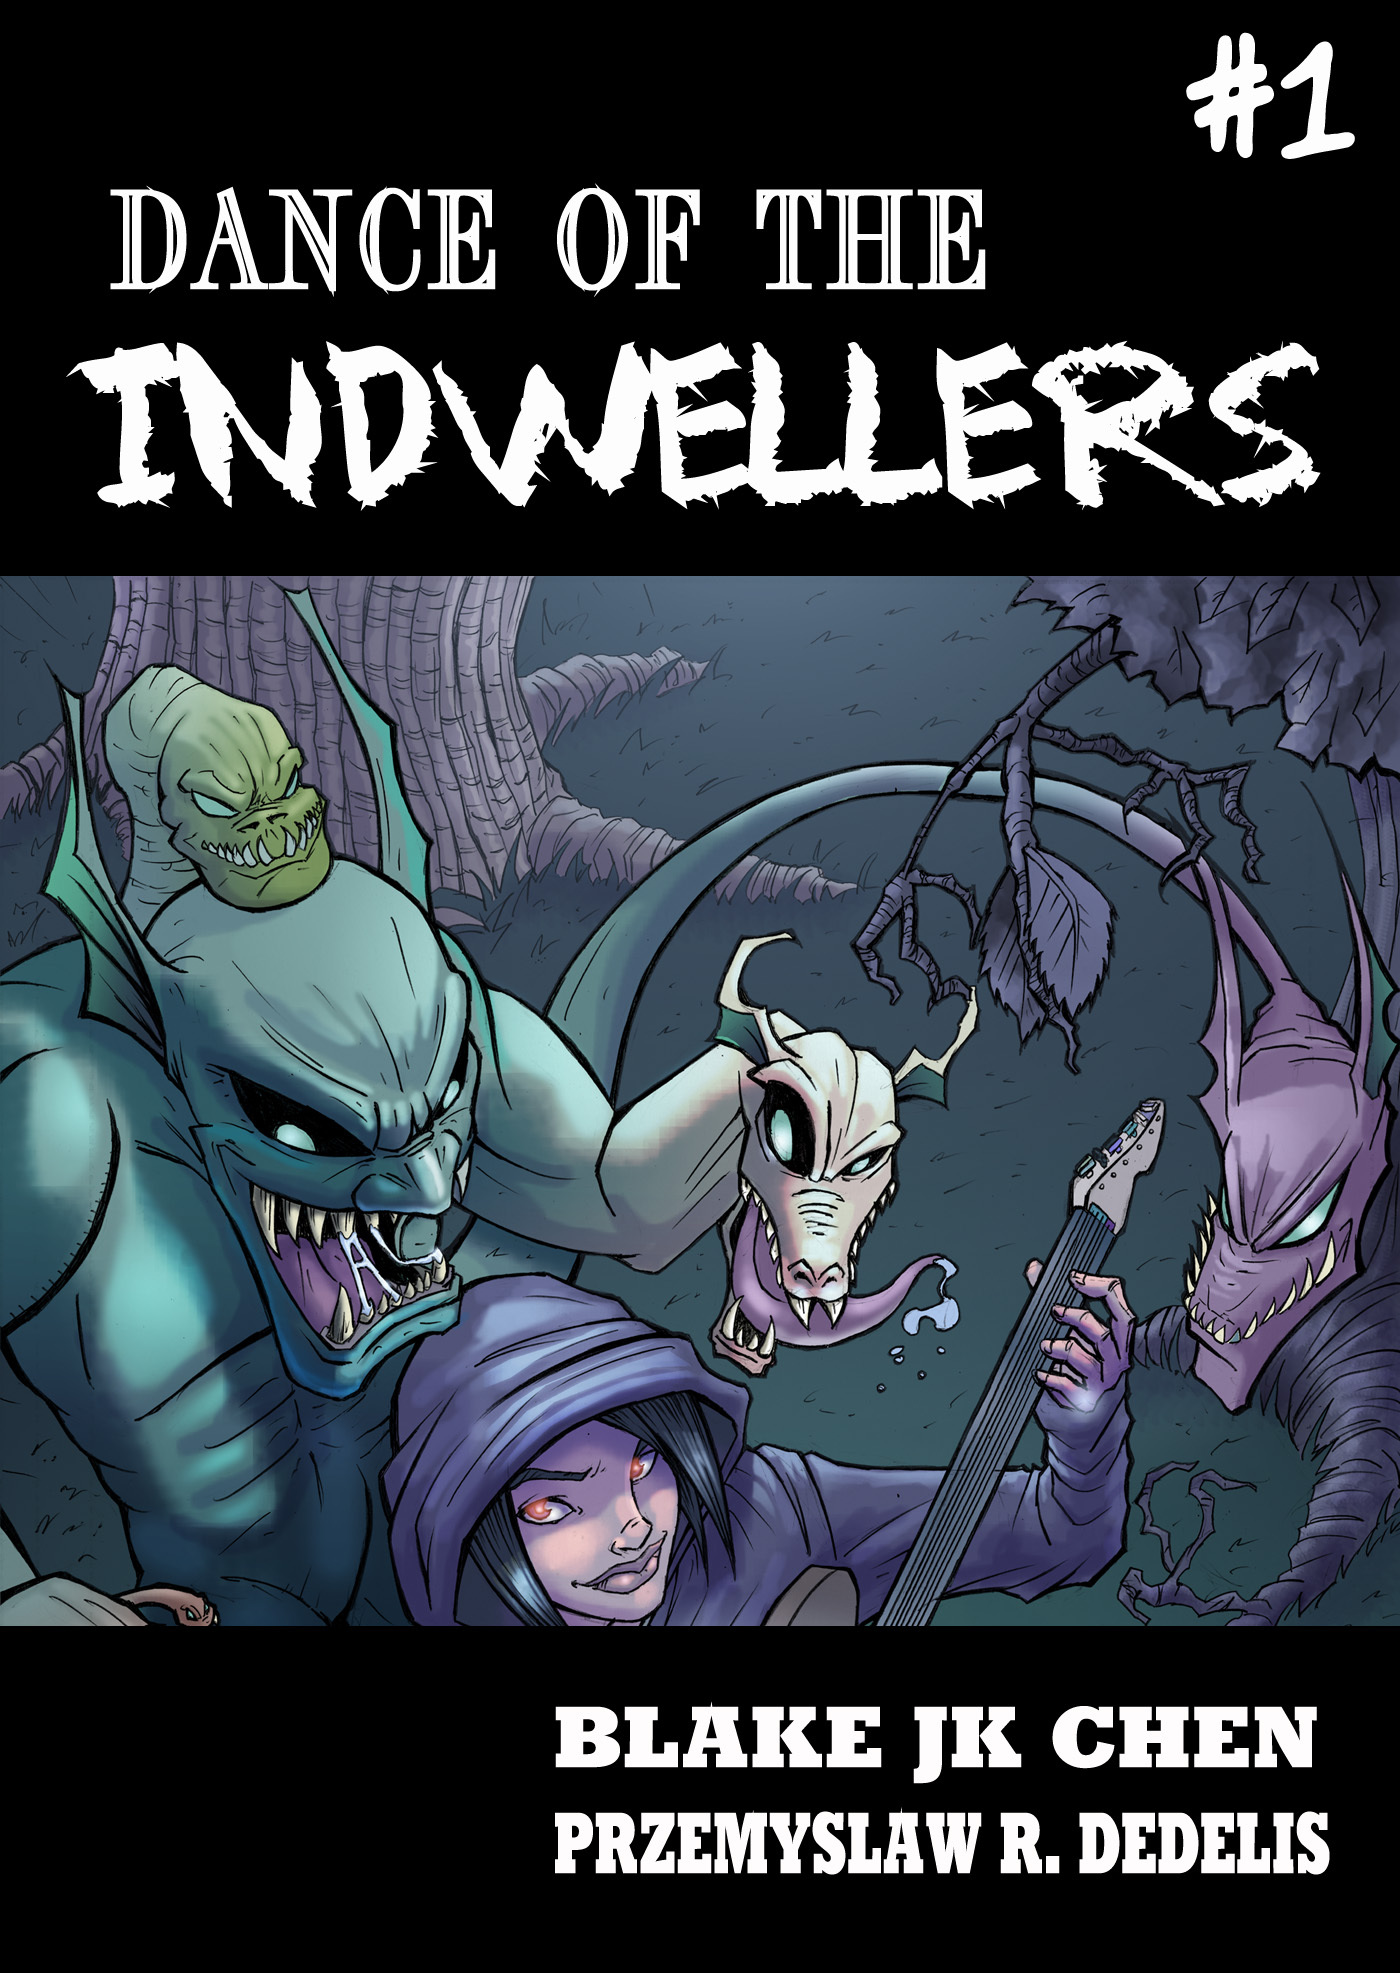 Dance of the Indwellers #1 (Paranormal Fantasy Manga Comic)